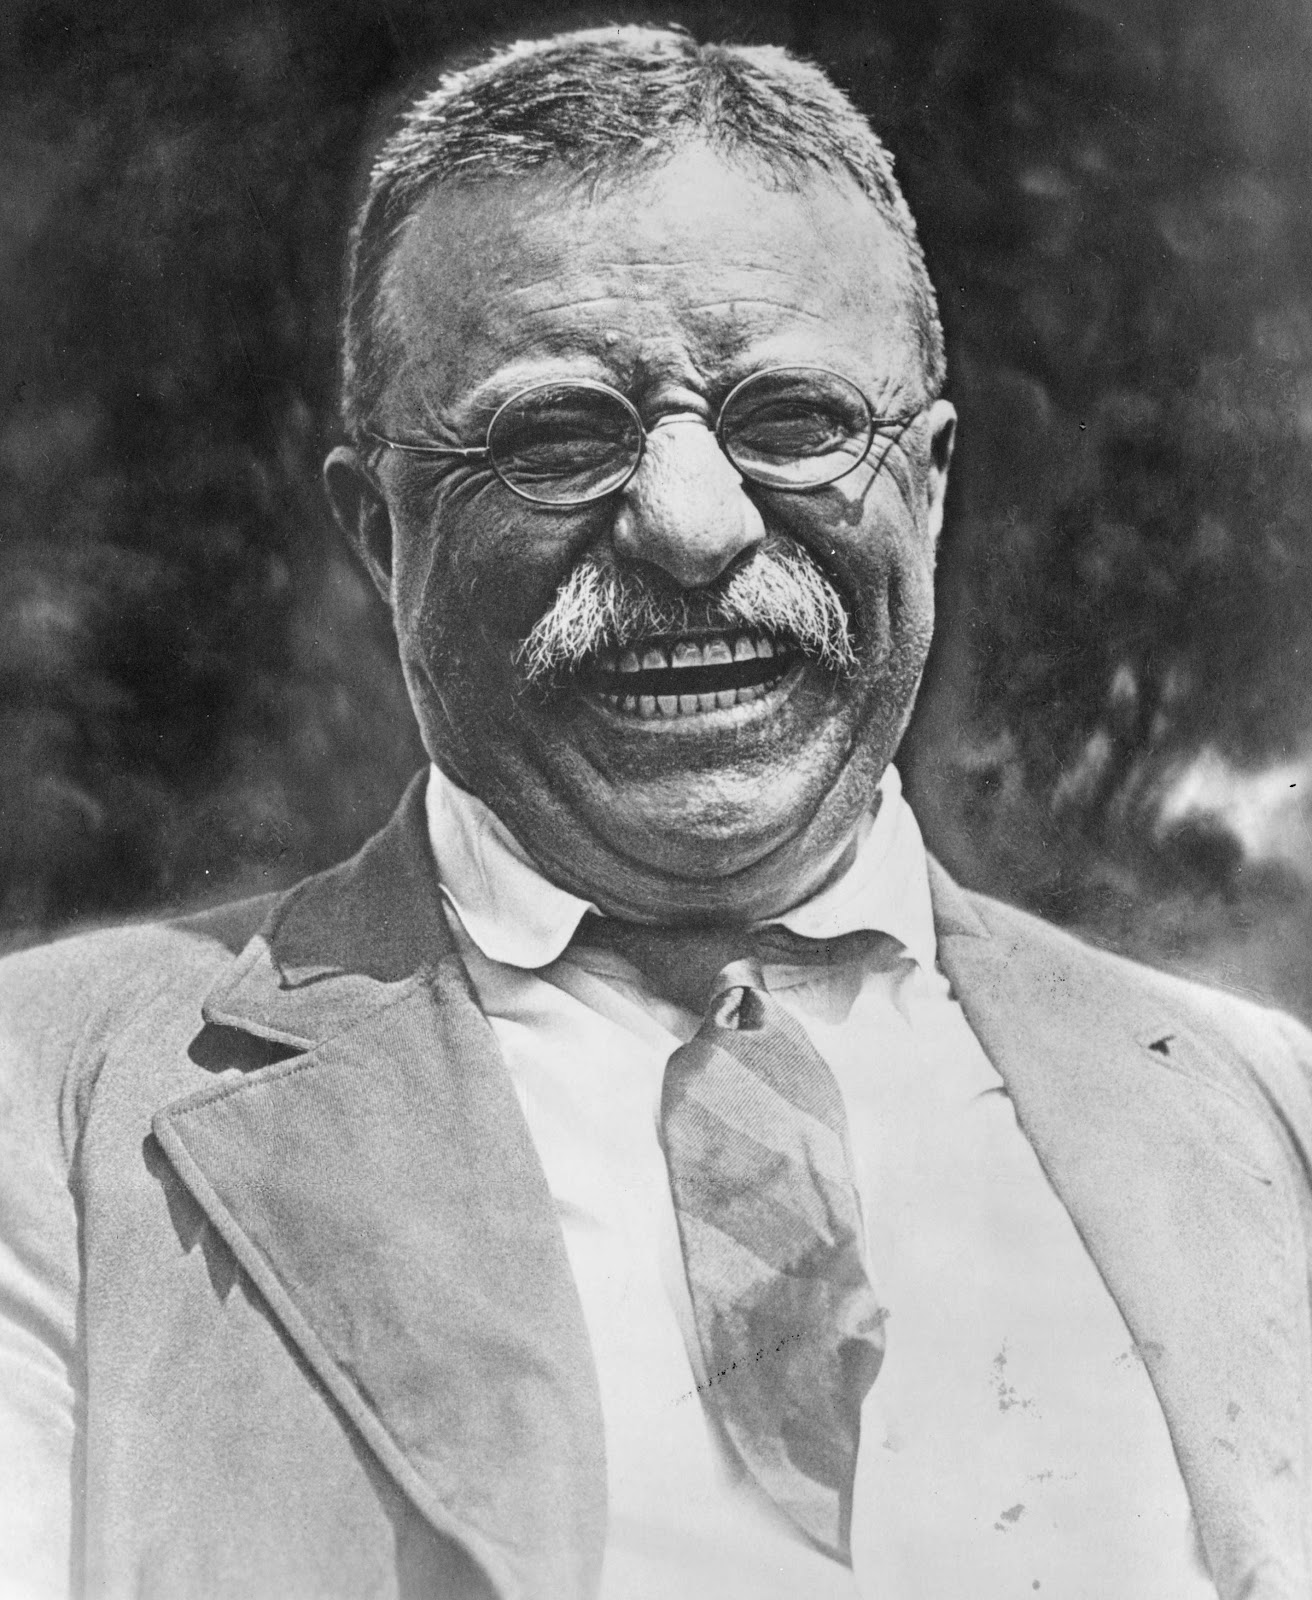 an analysis of theodore roosevelts political accomplishments An analysis of the famous phrases of some the life and accomplishments of theodore roosevelt 901 an analysis of theodore roosevelt's political accomplishments.